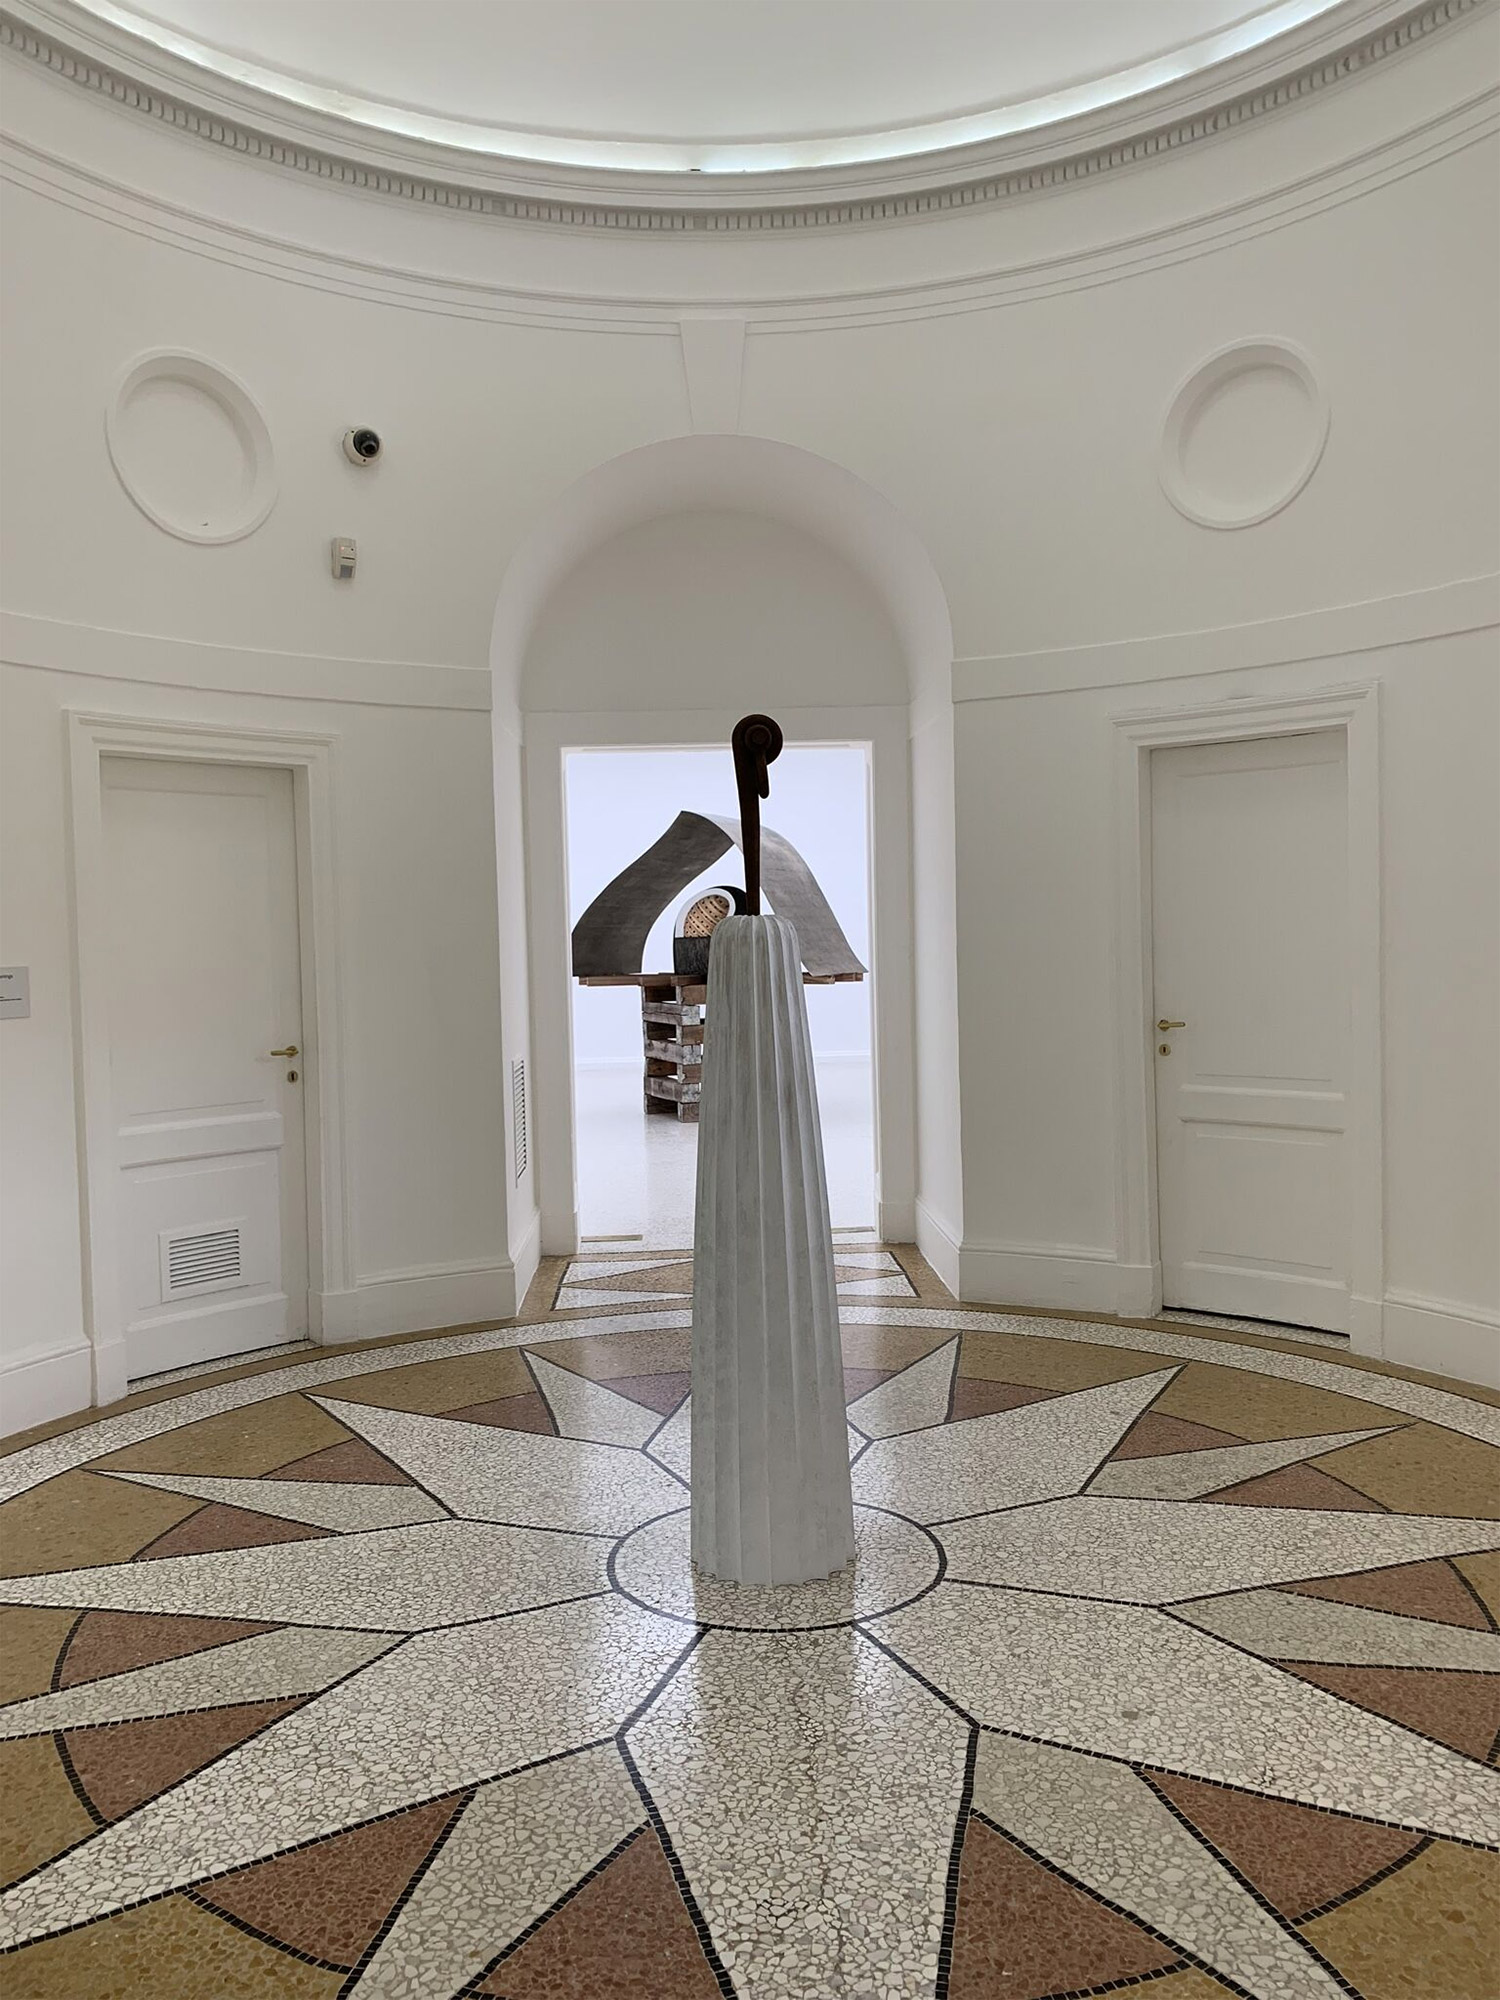 Image of A Column for Sally Hemings, 2019, with The Cloister-Redoubt or Cloistered Doubt? in the background.